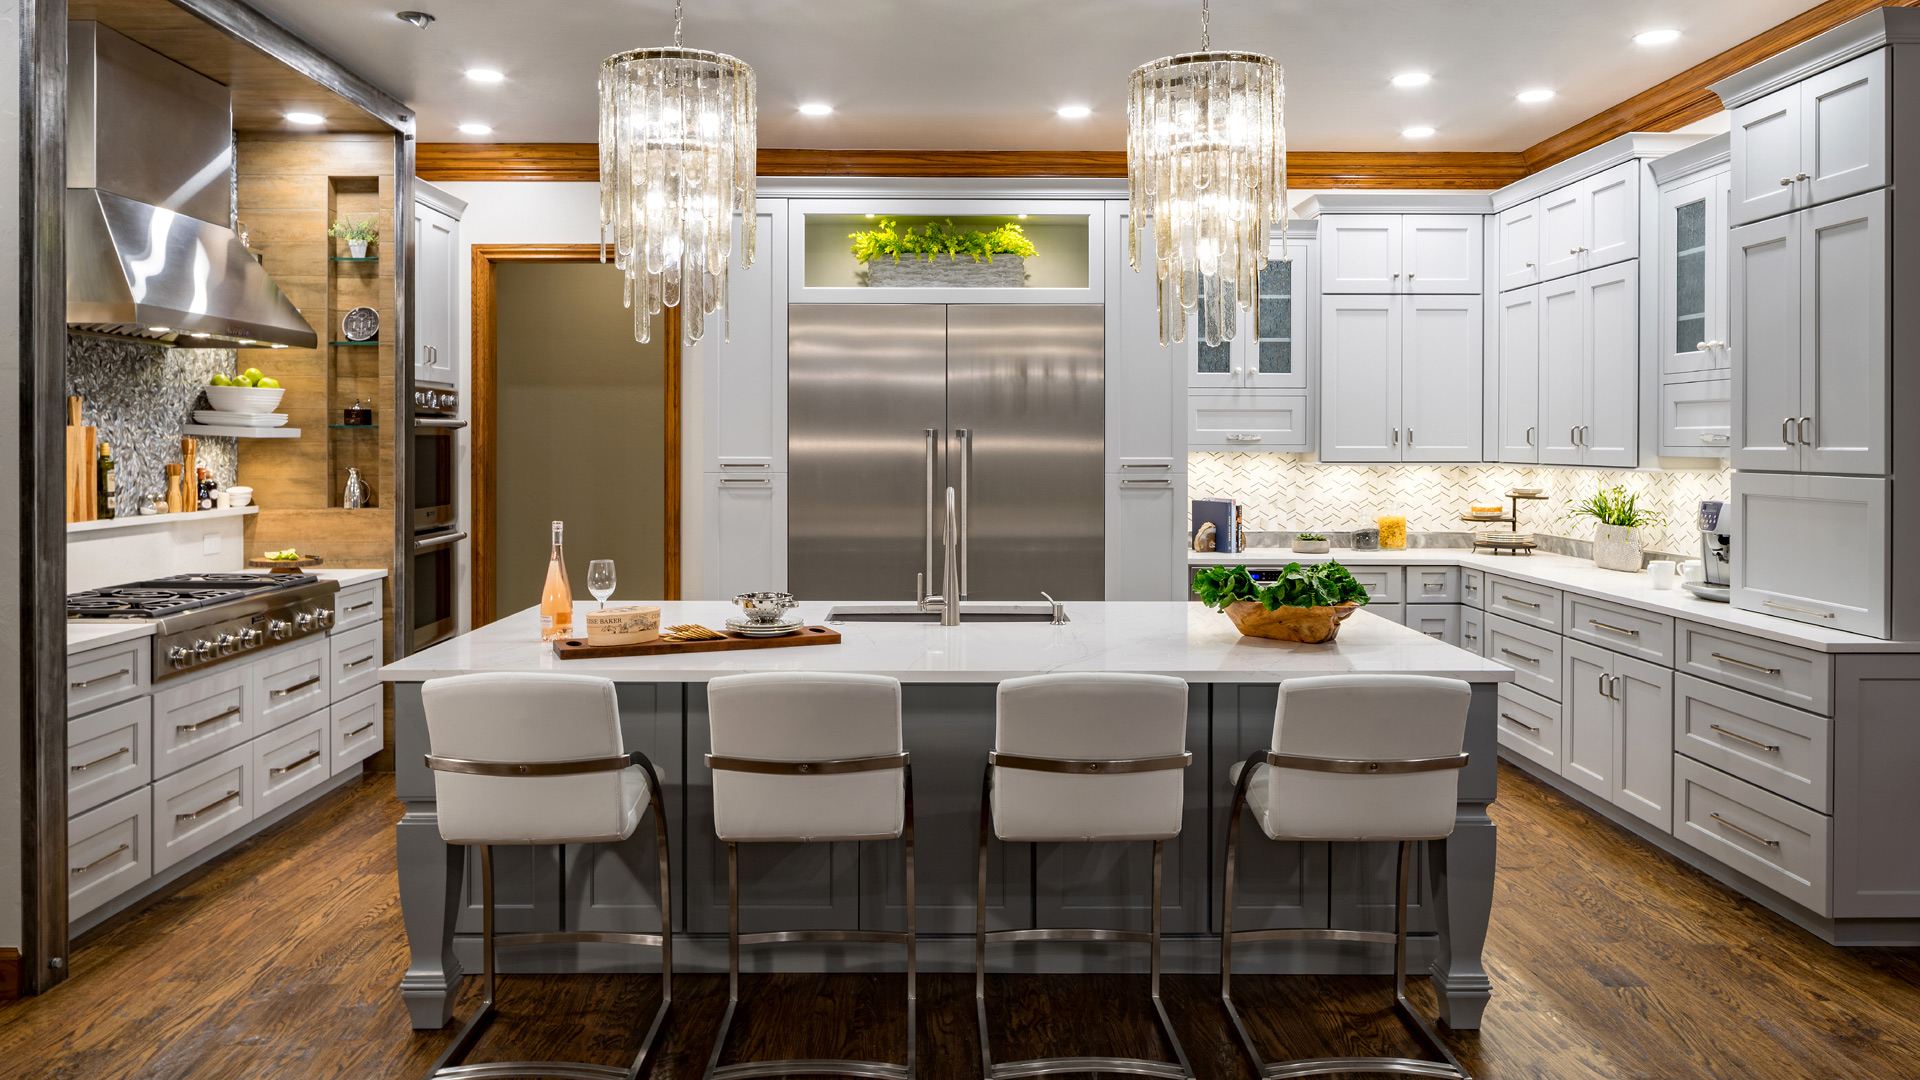 kitchen remodel okc what kind of paint for cabinets edmond and bath 1500 43 trend home design